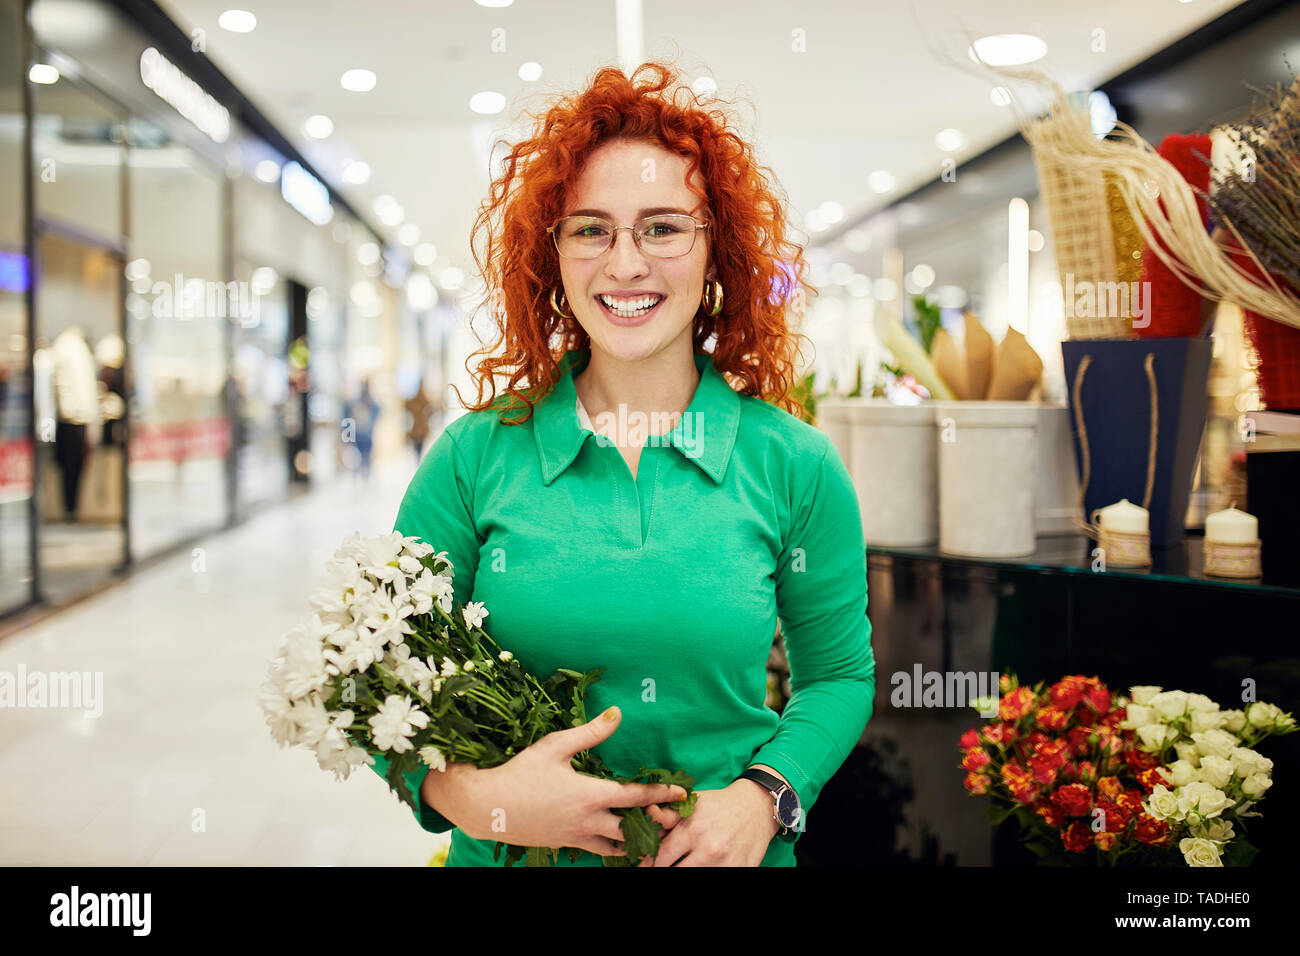 Portrait of smiling florist holding bunch of flowers in flower shop - Stock Image